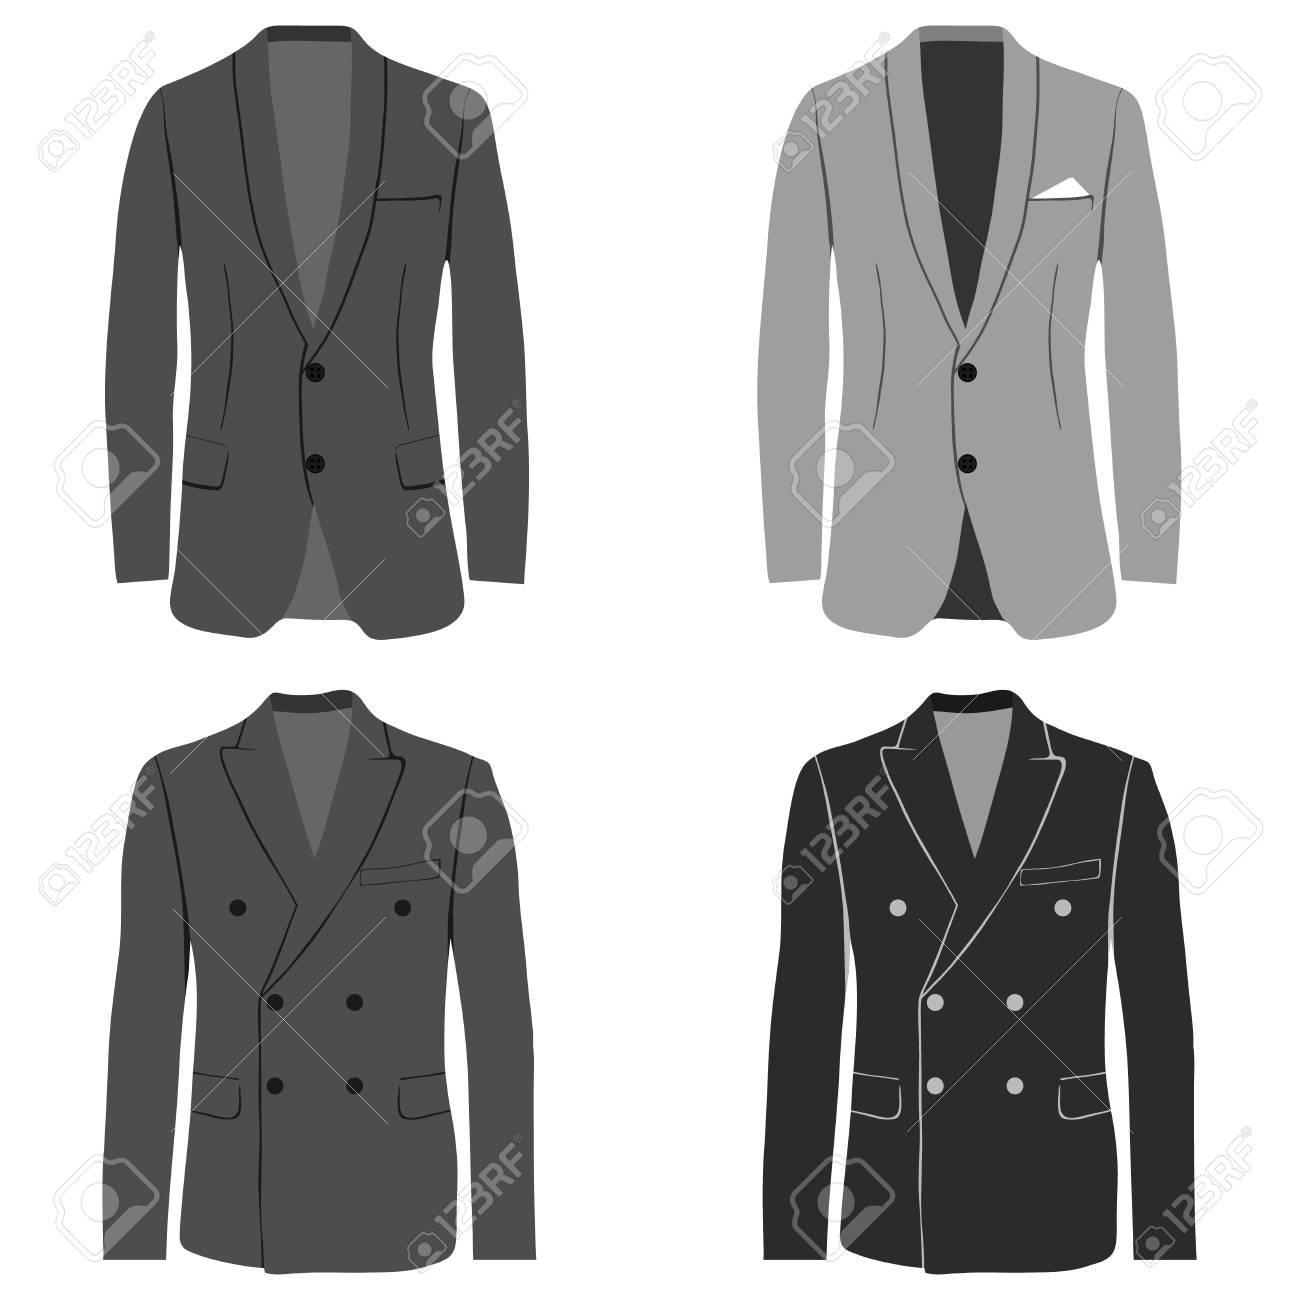 3caa17b750689 Men's jacket, double-breasted and single-breasted jacket, costume. Flat  design